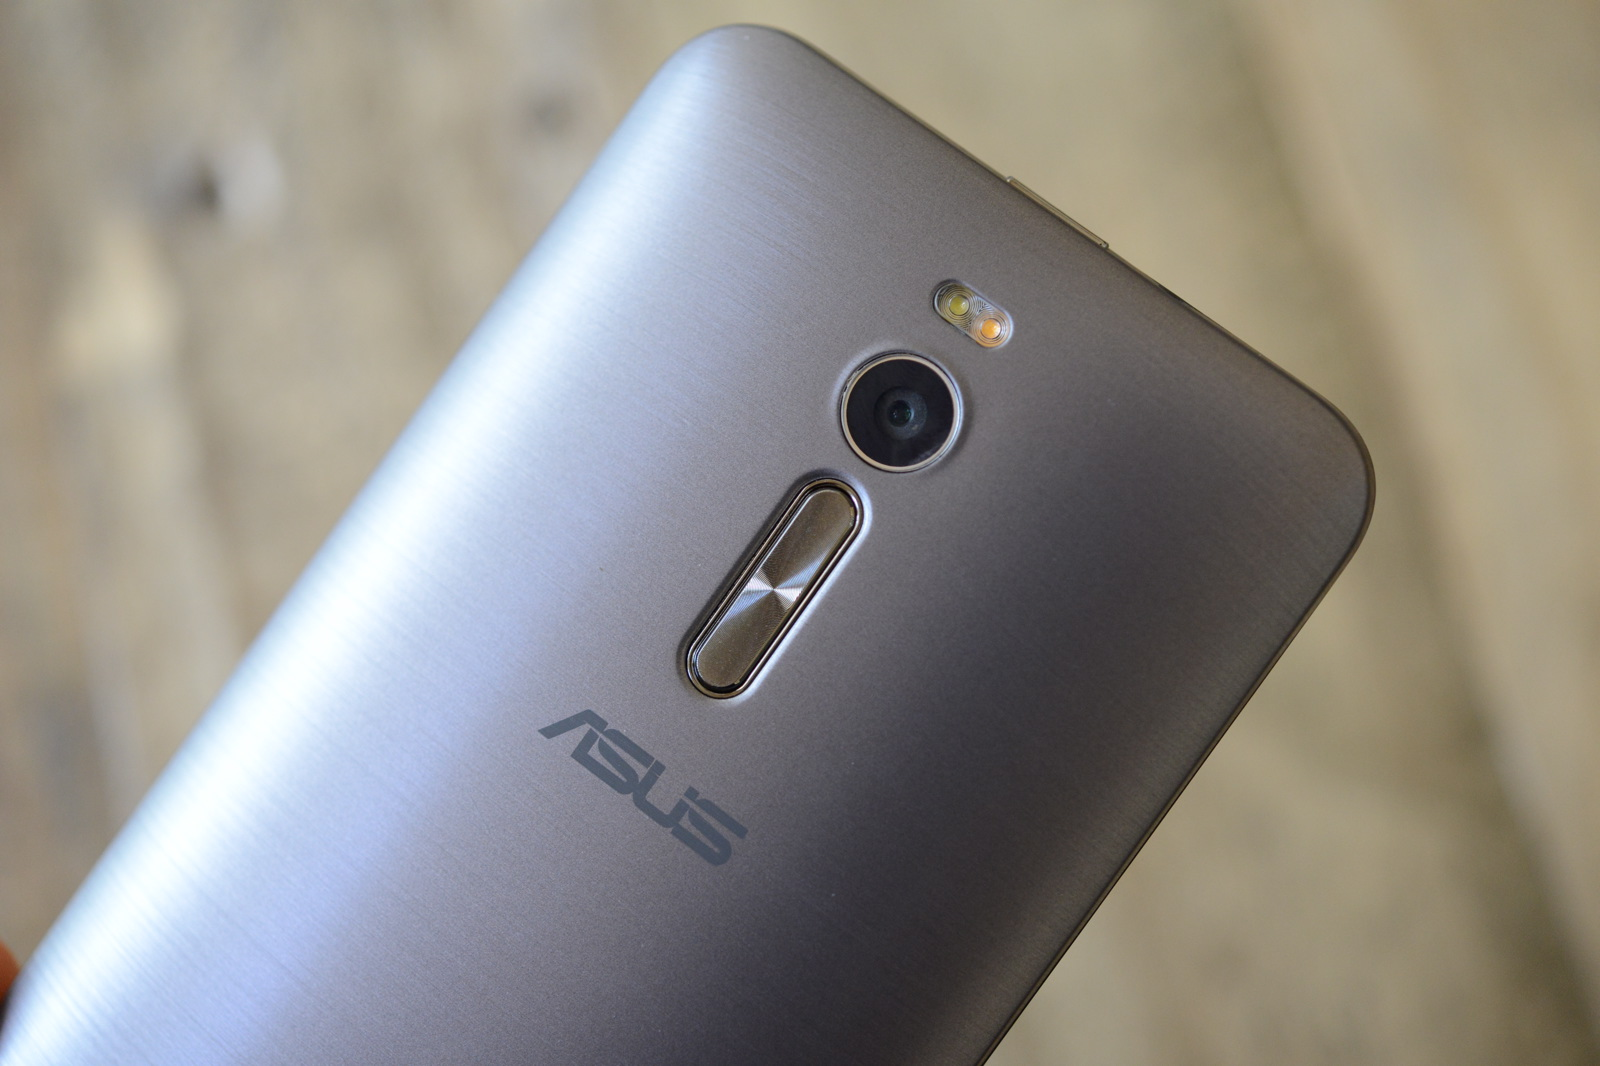 ASUS ZenFone 2 Review: Excellent Android Value